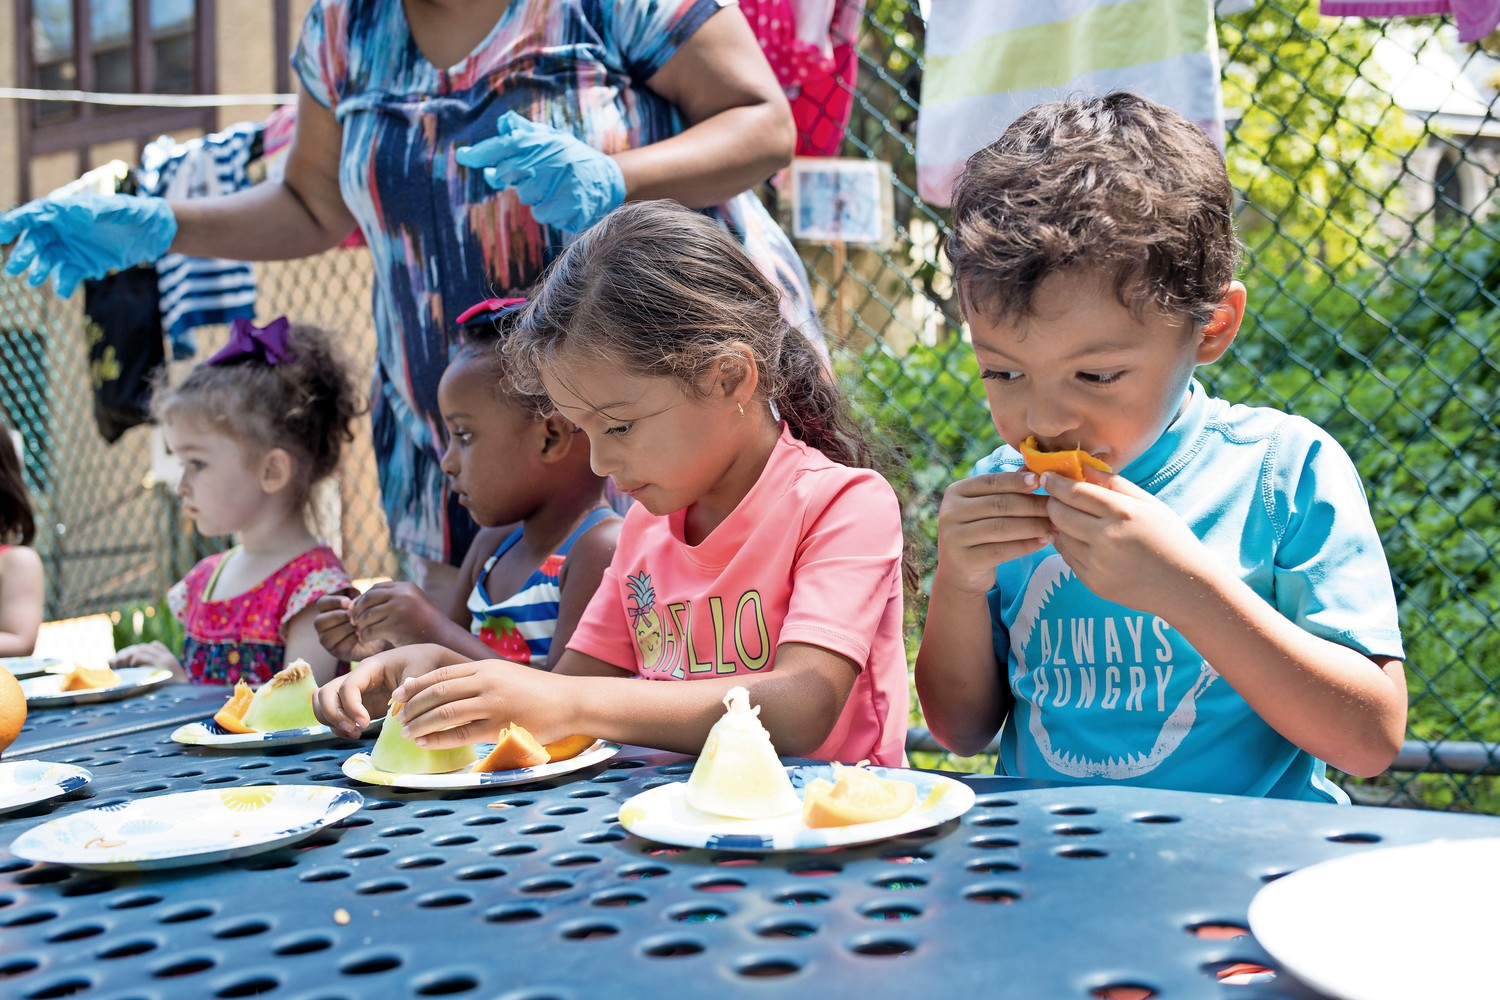 Students at Riverdale Presbyterian Church Nursery School eat fruit and collect seeds from the fruit that they will then plant in the garden as part of the school's 'Explorations in Nature' summer program.